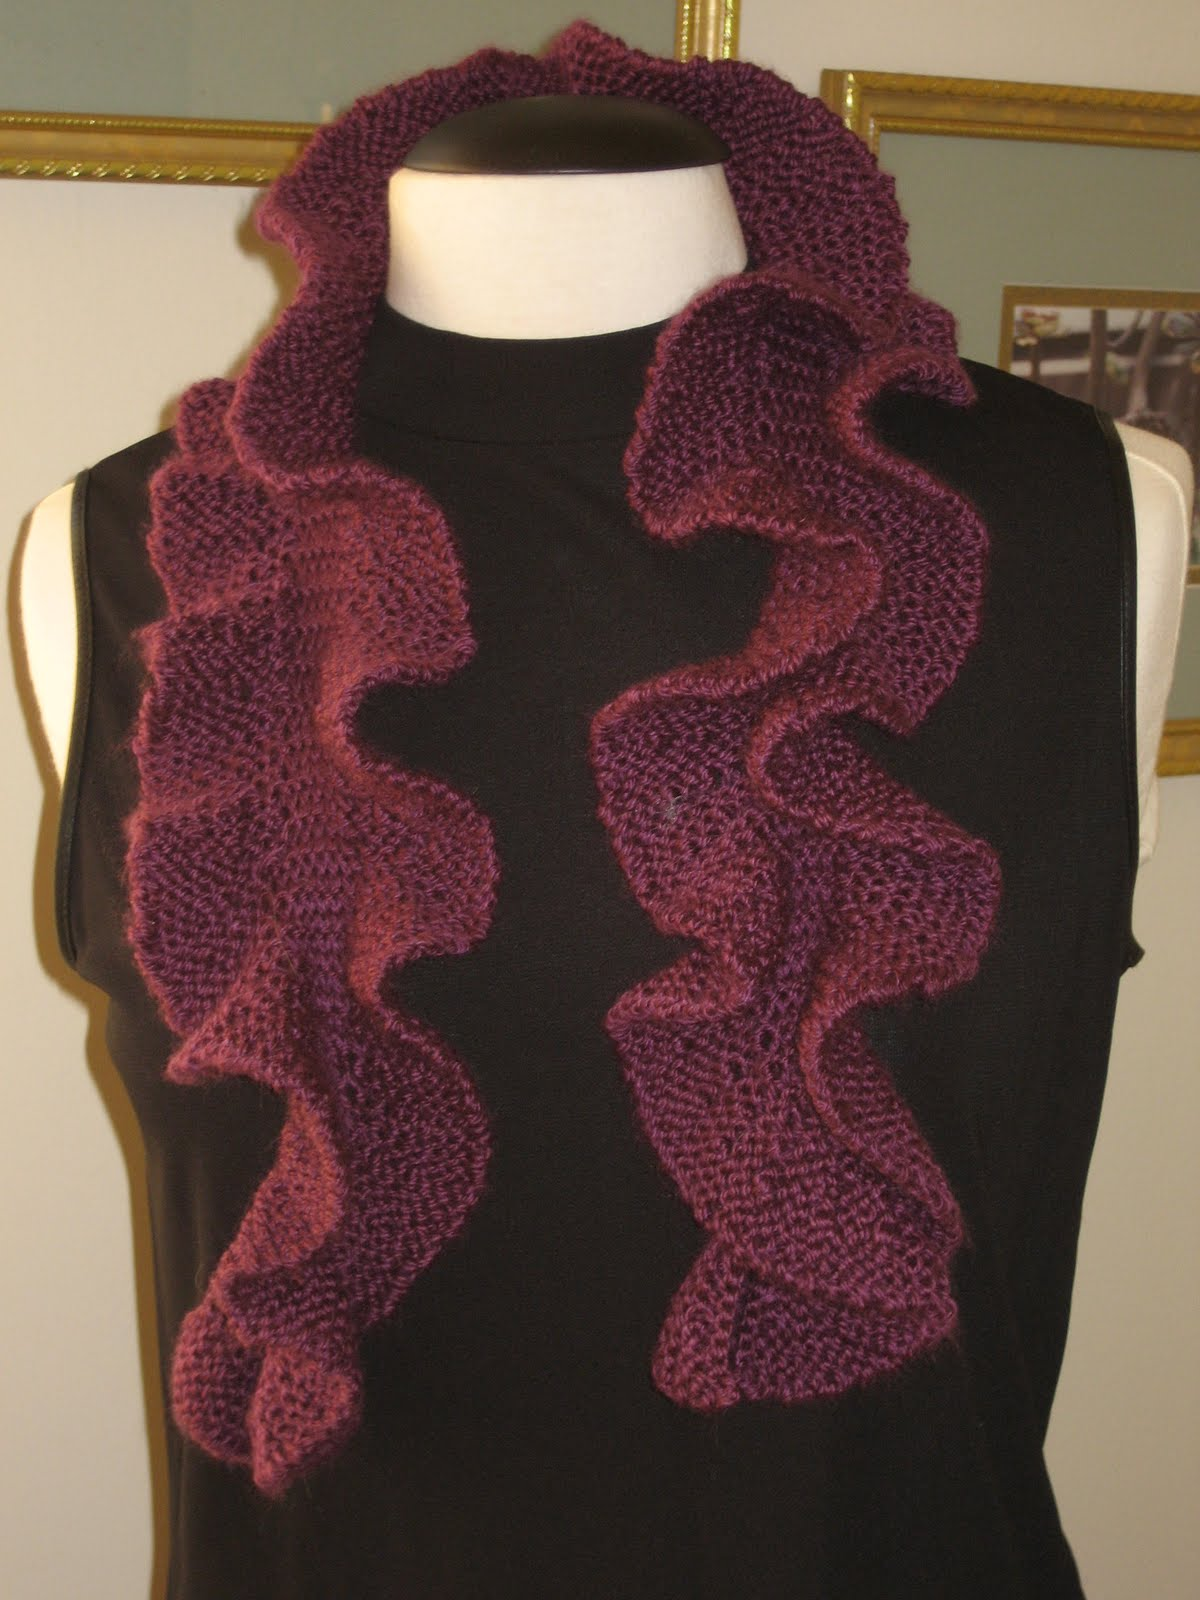 Ann Norling Short Row Scarf Pattern and Noro Kureyon Sock Yarn